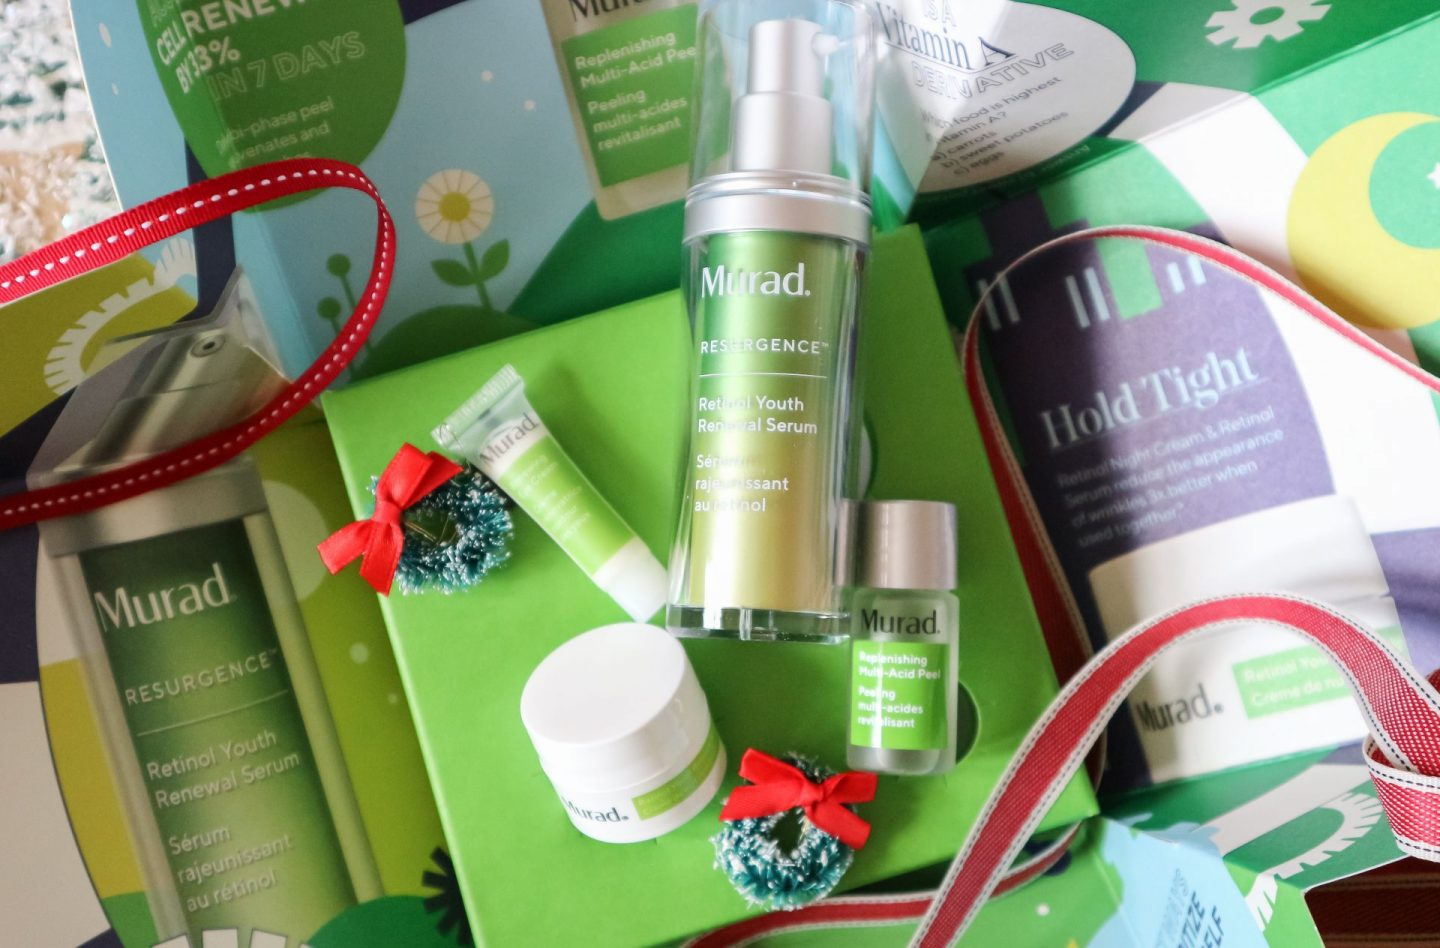 Murad Take Time Off Kit review